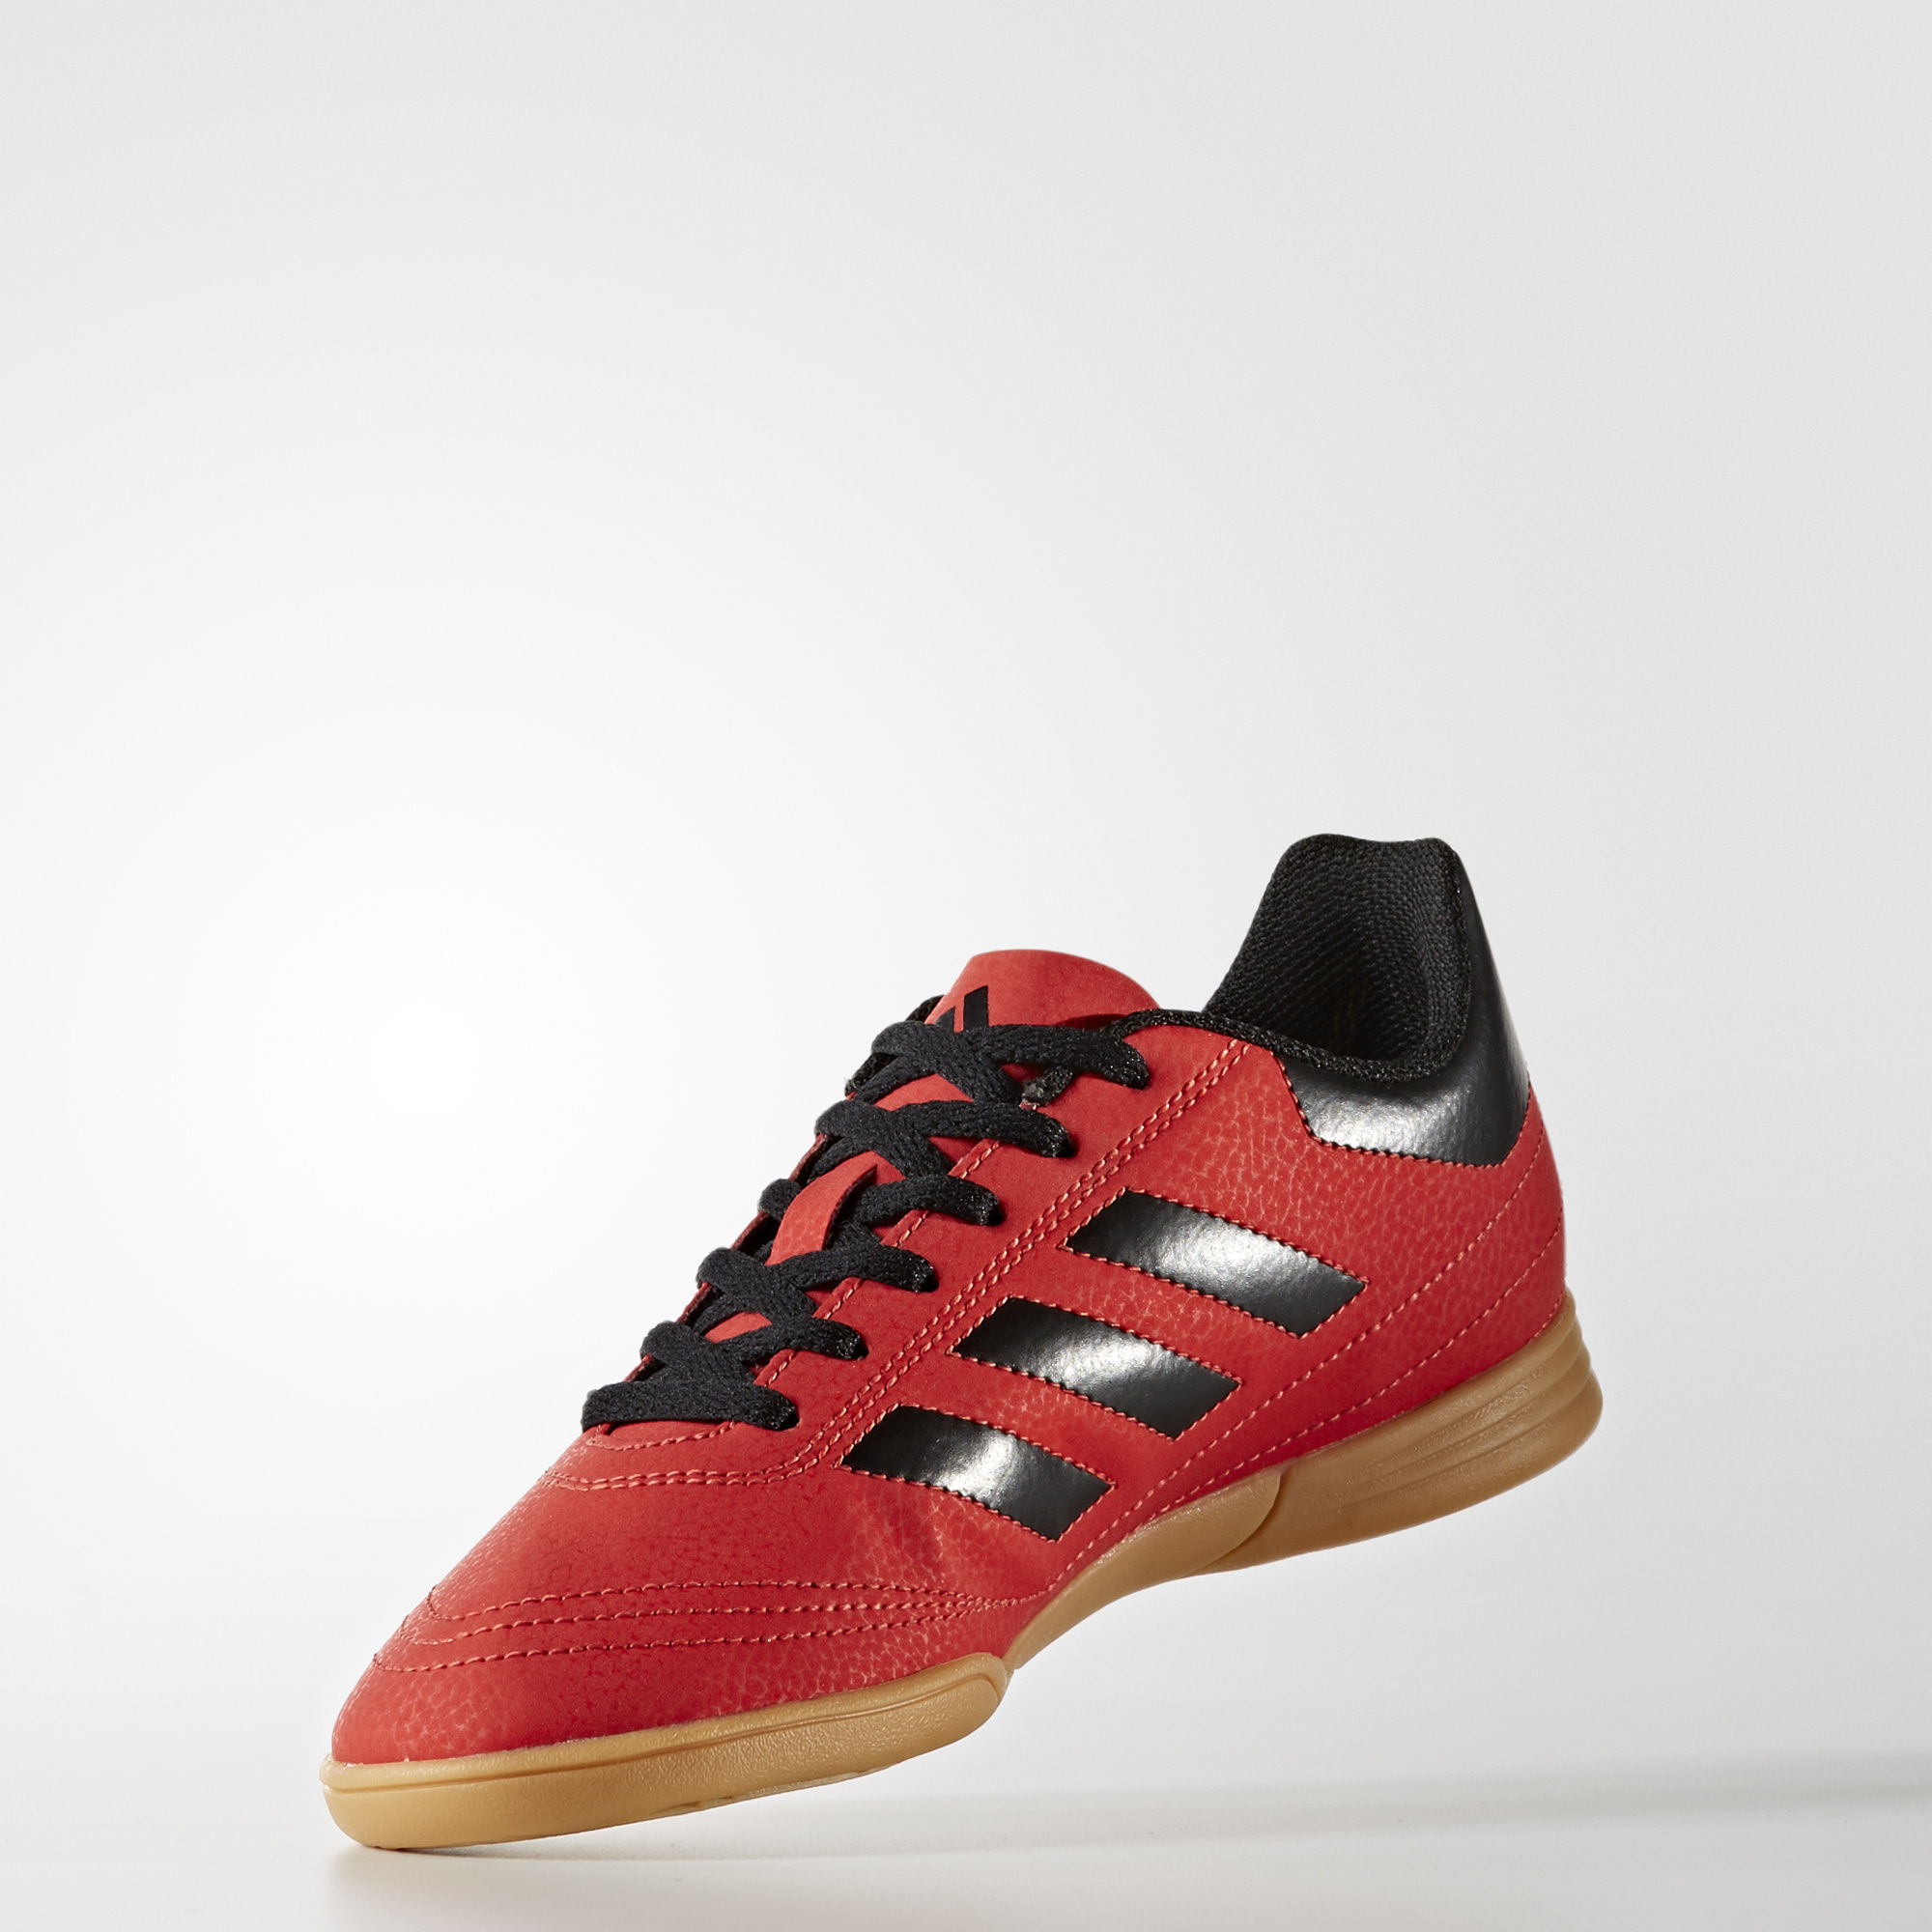 ADIDAS GOLETTO VI IN S81099 JR